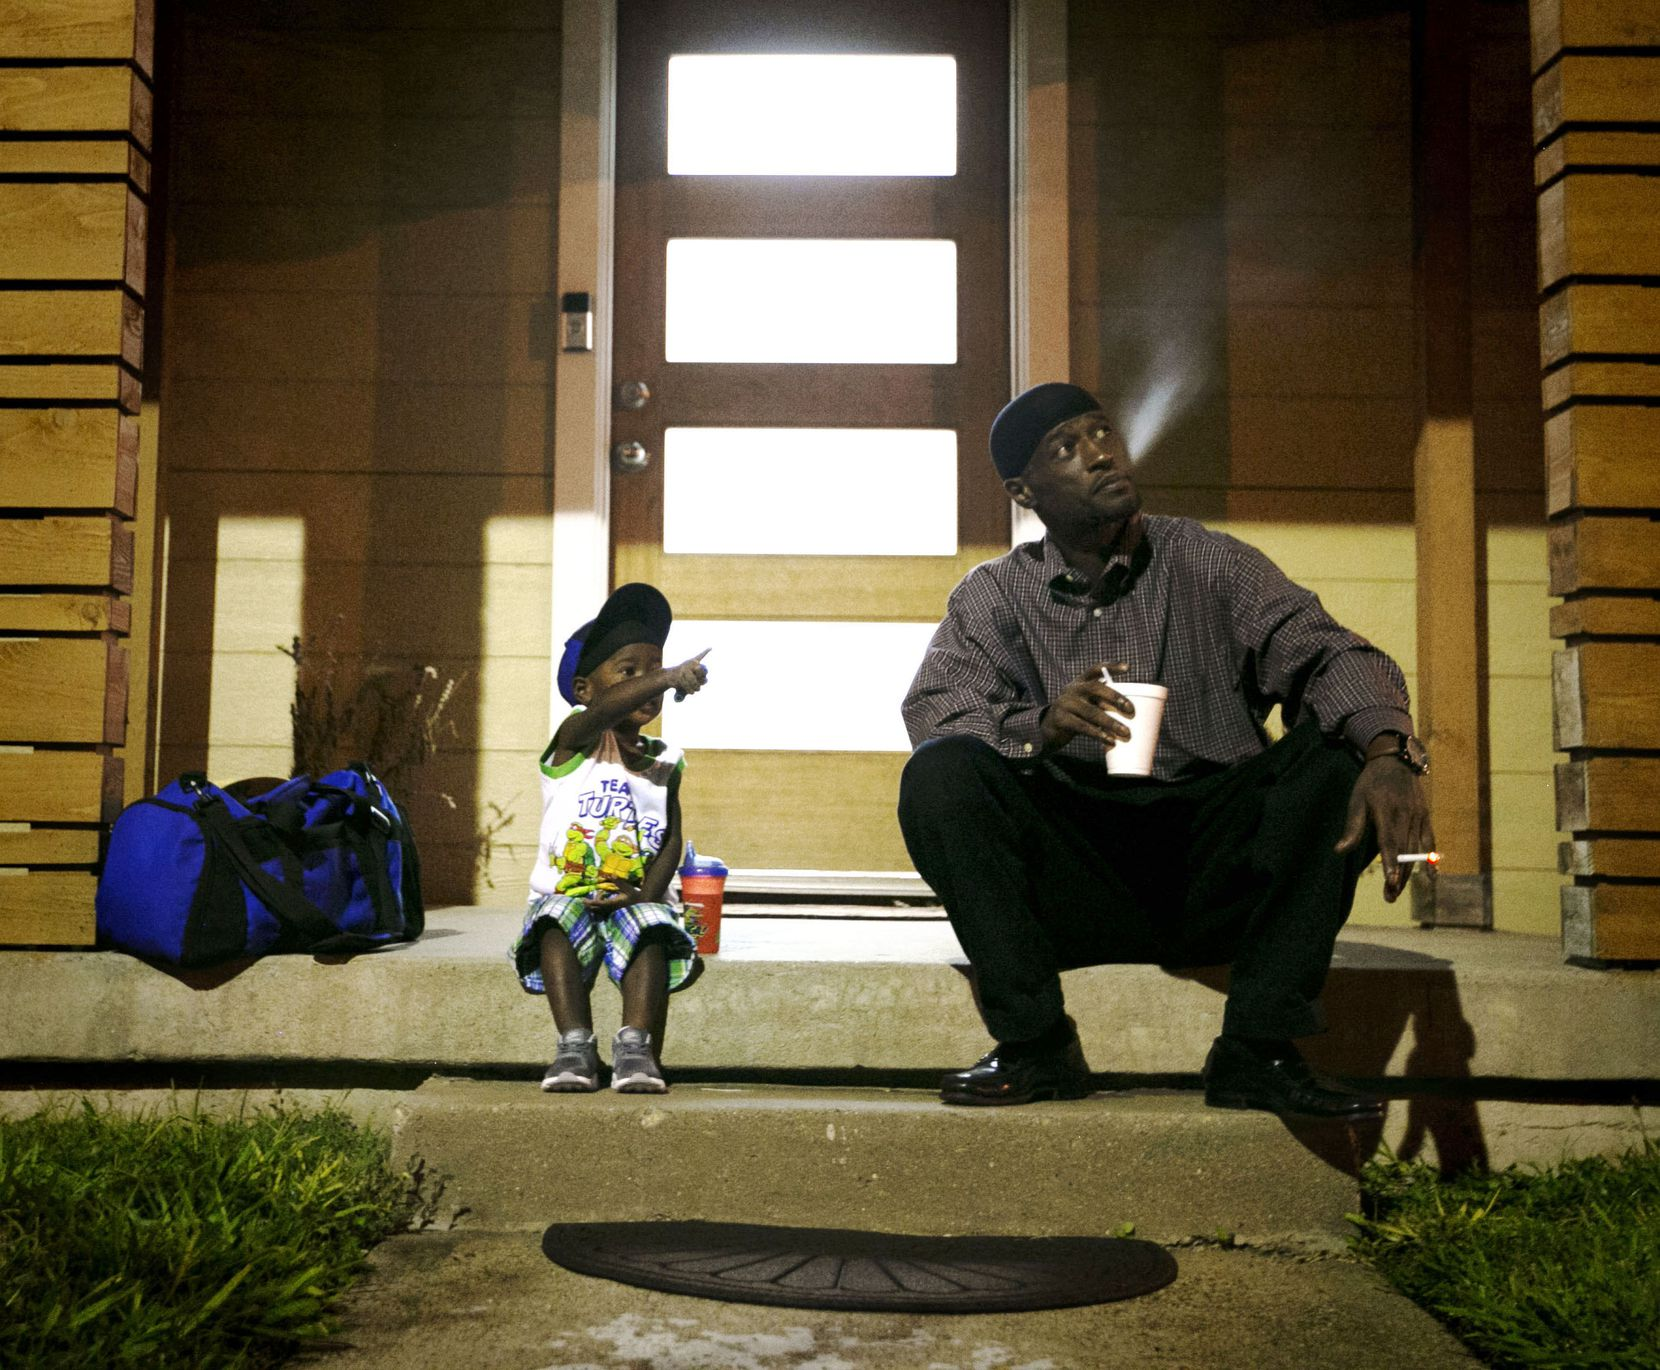 Joshua Miller and his son, Jordan, wait for the day care van to arrive.